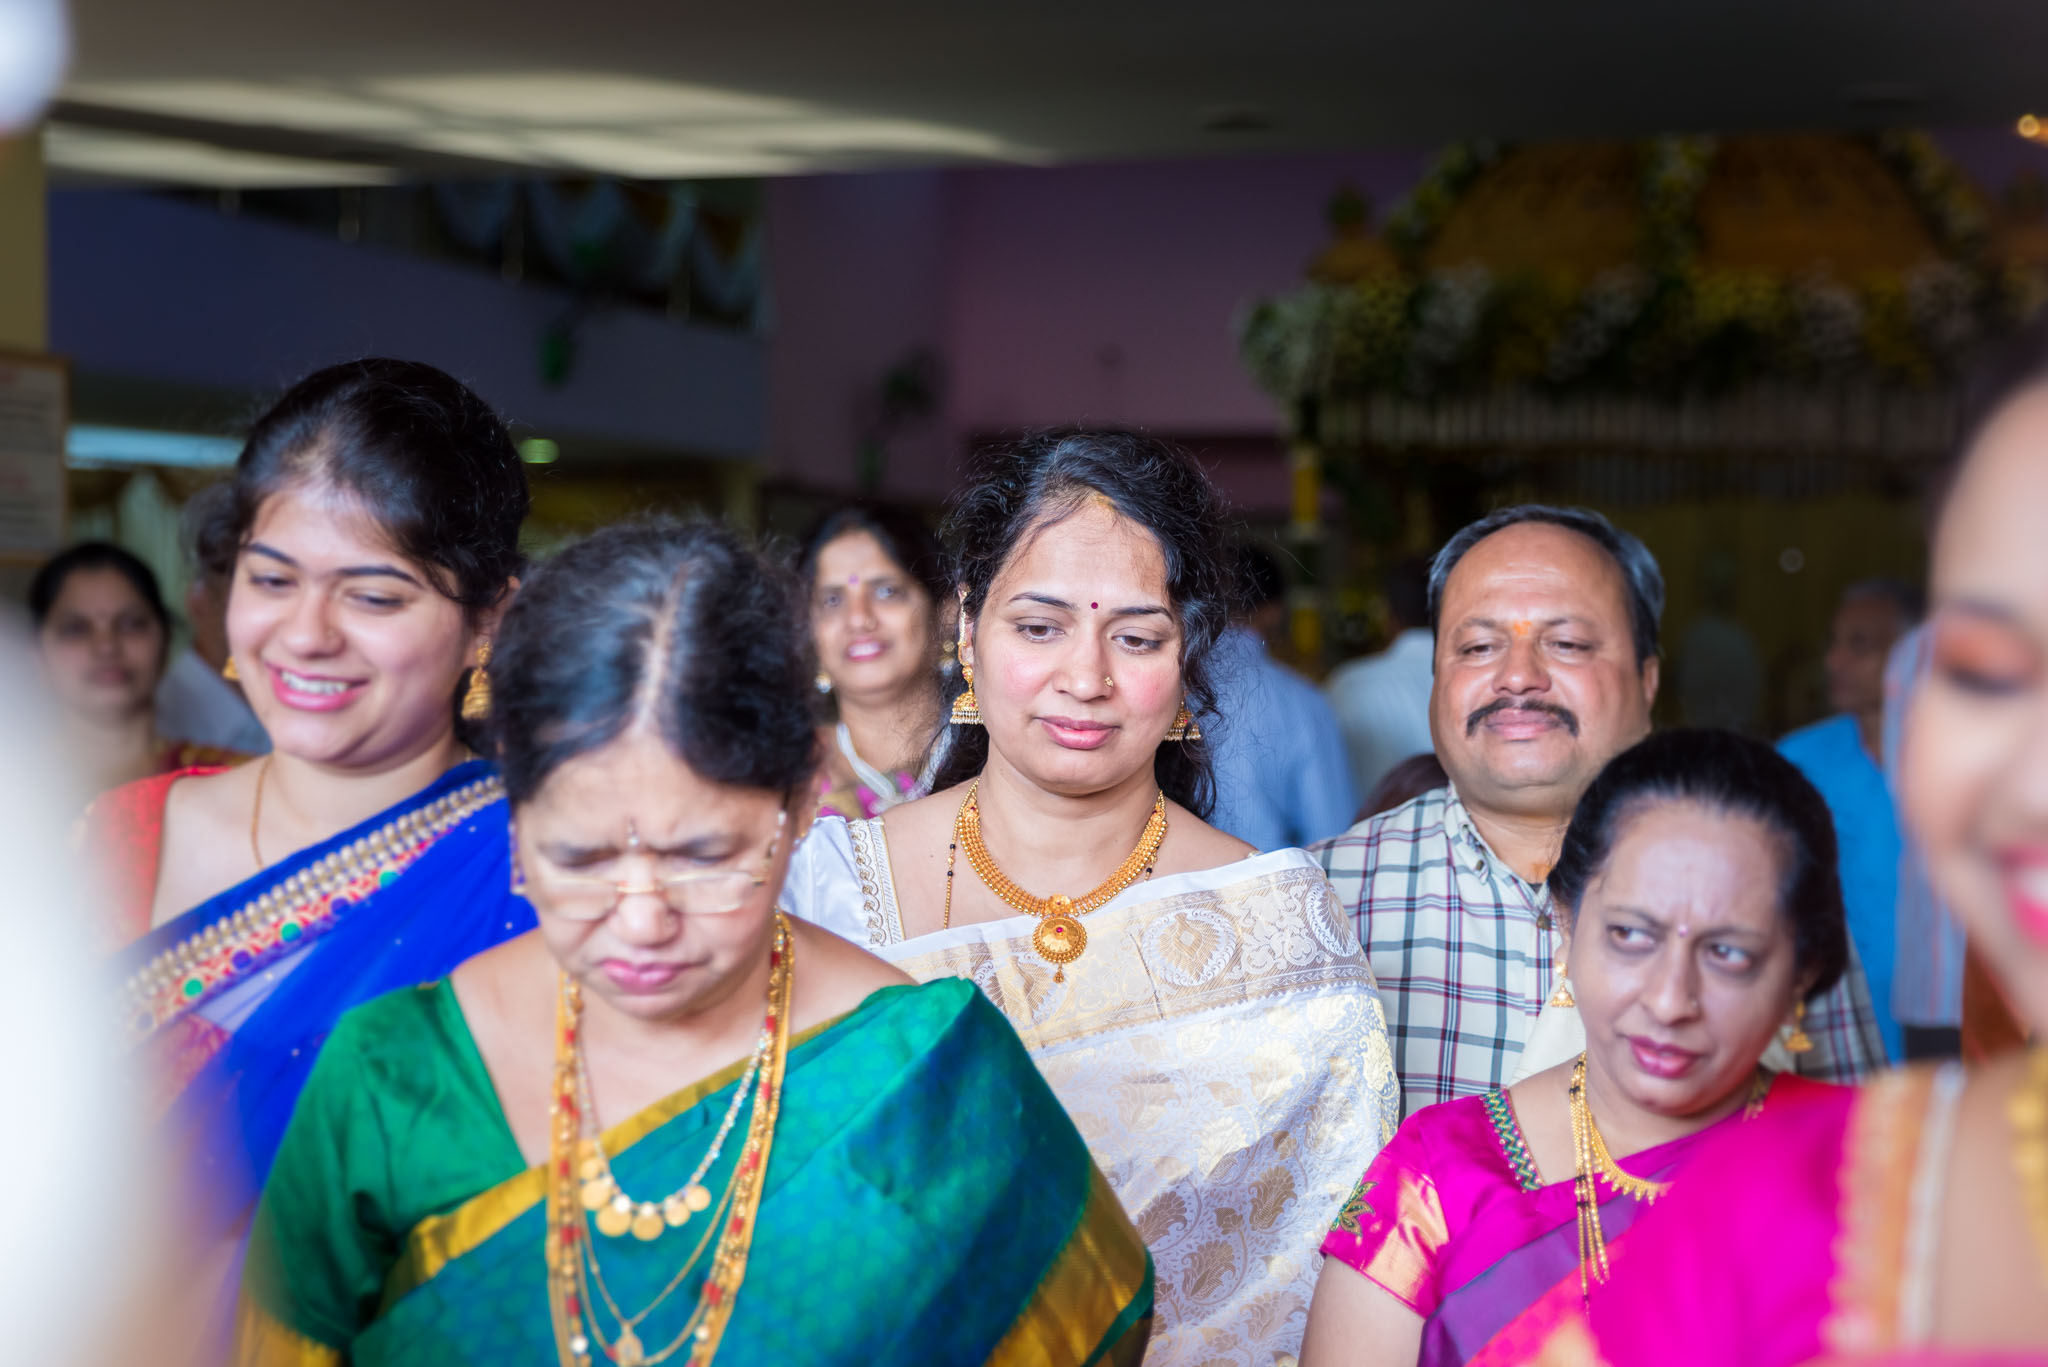 WhatKnot-Candid-Wedding-Photography-Mumbai-Bangalore-131